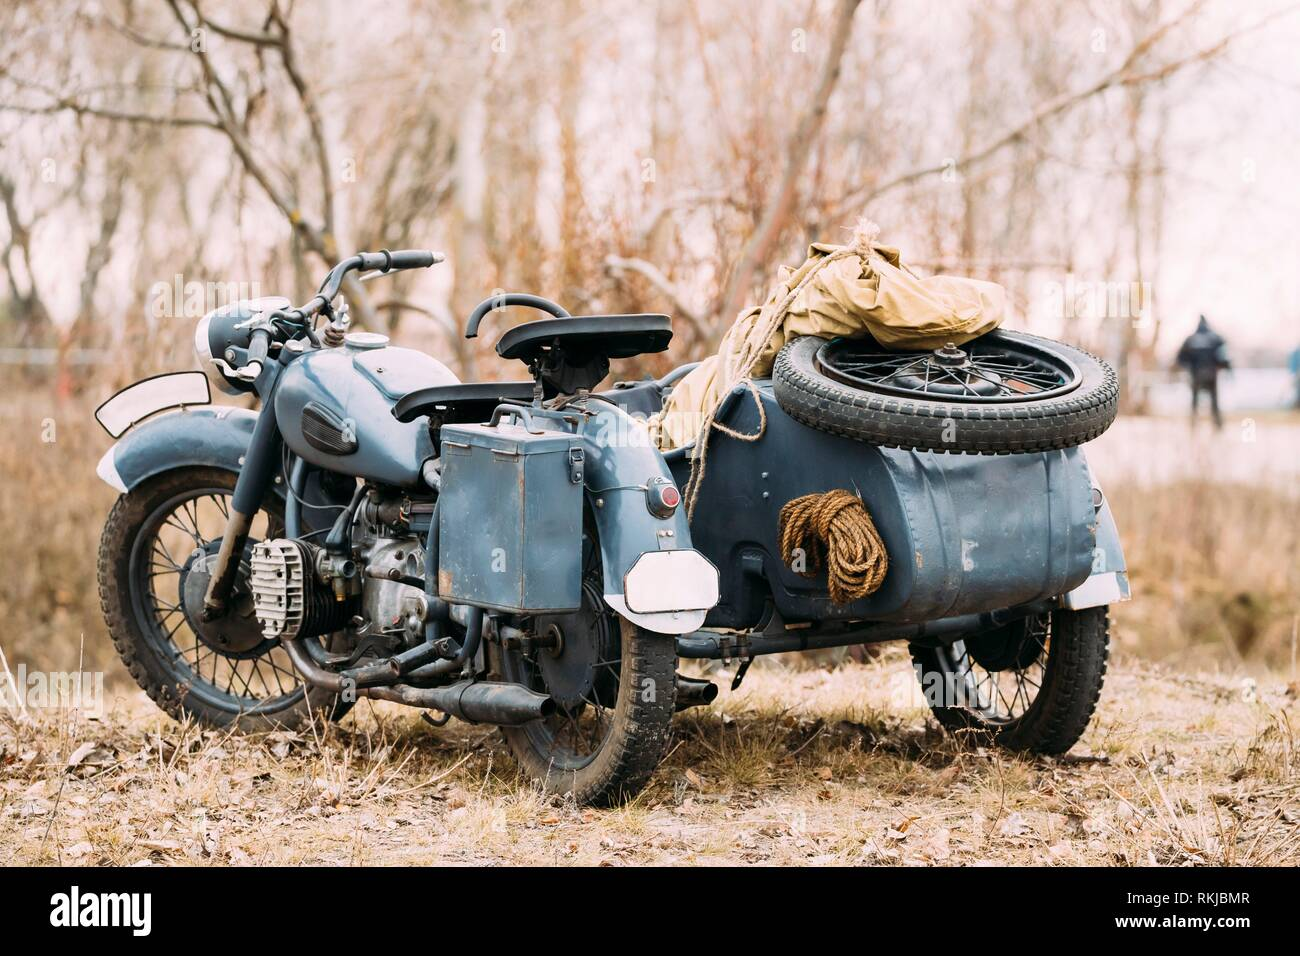 The Old Rarity Tricar, Three-Wheeled Gray Motorcycle With A Sidecar Of German Forces Of World War 2 Time Standing As An Exhibit In Summer Sunny Park. - Stock Image